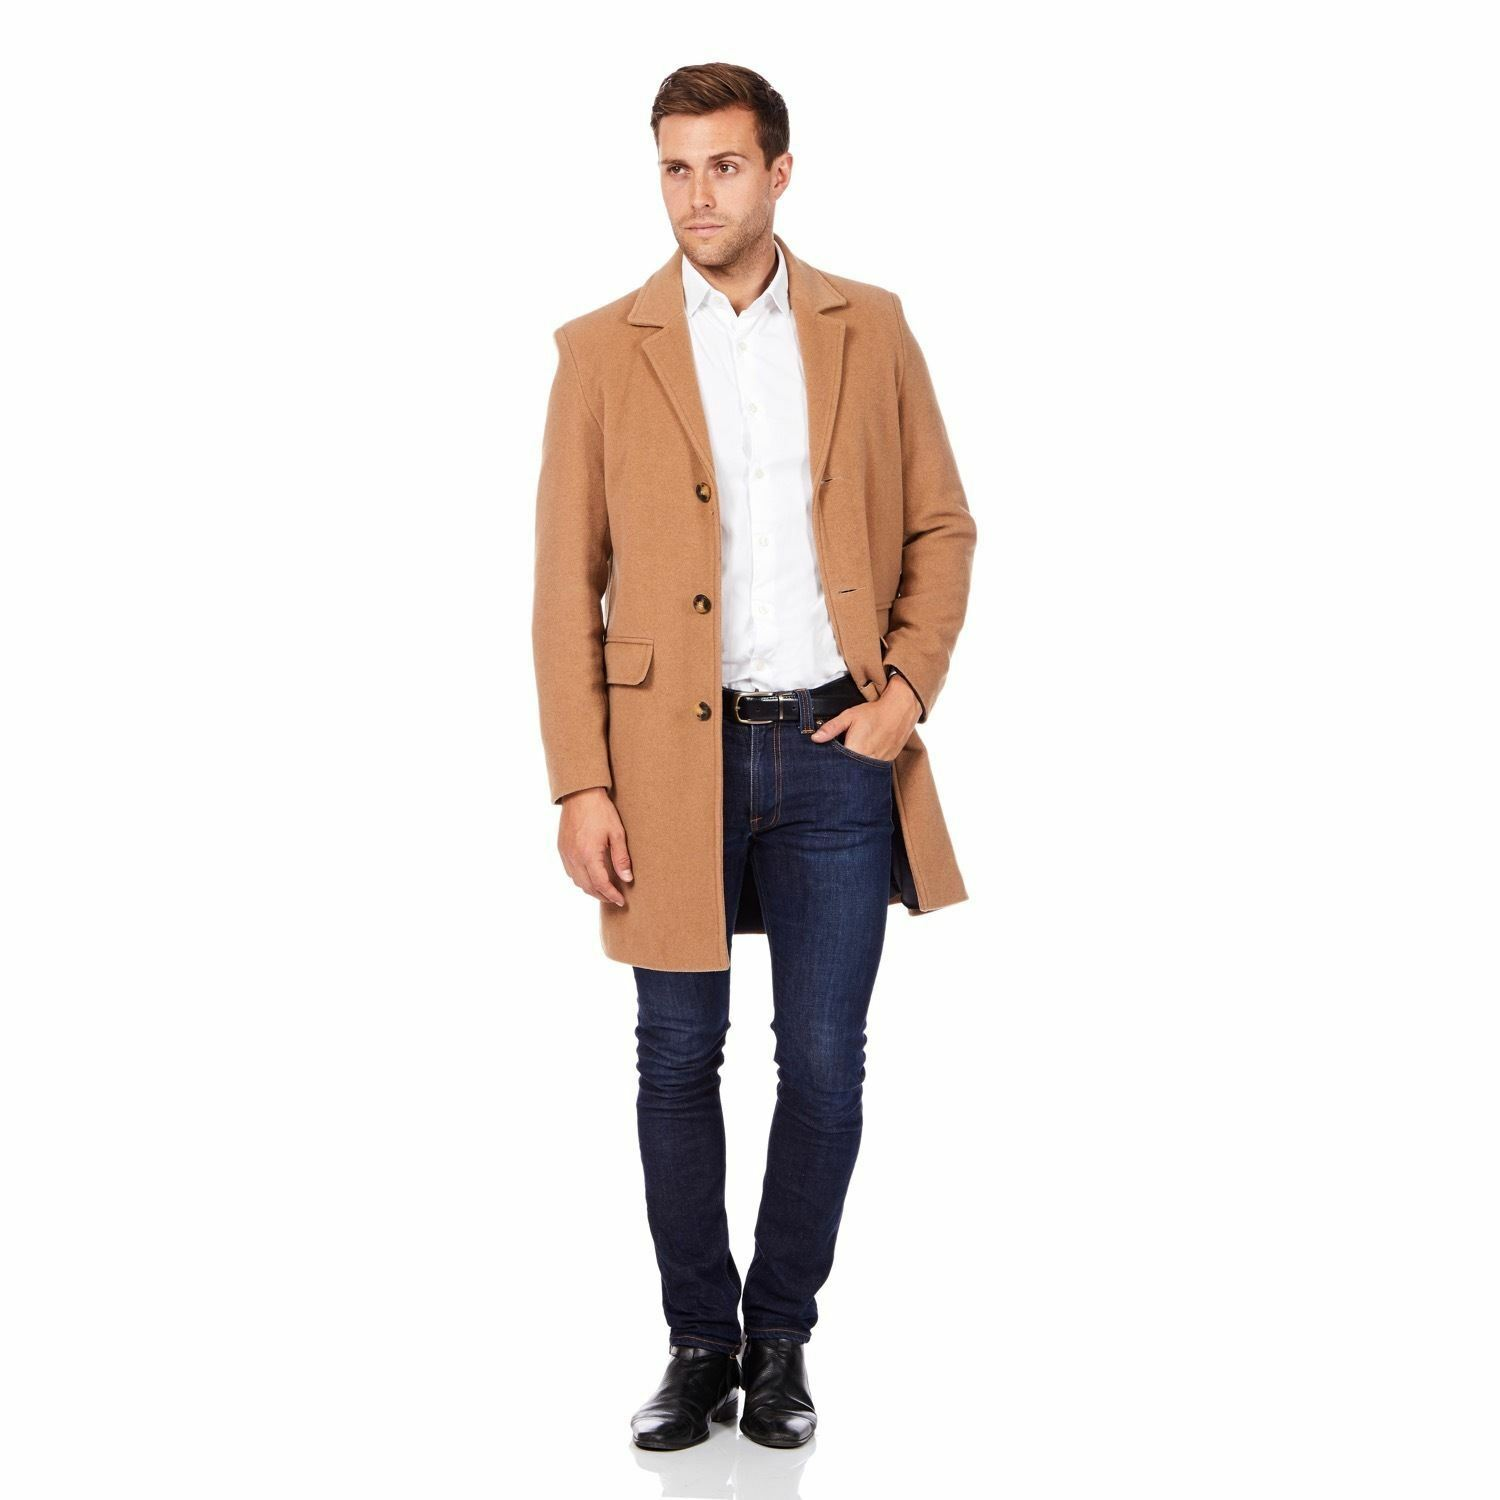 De La Creme MAN - Men's Single Breasted Wool Mix Overcoat